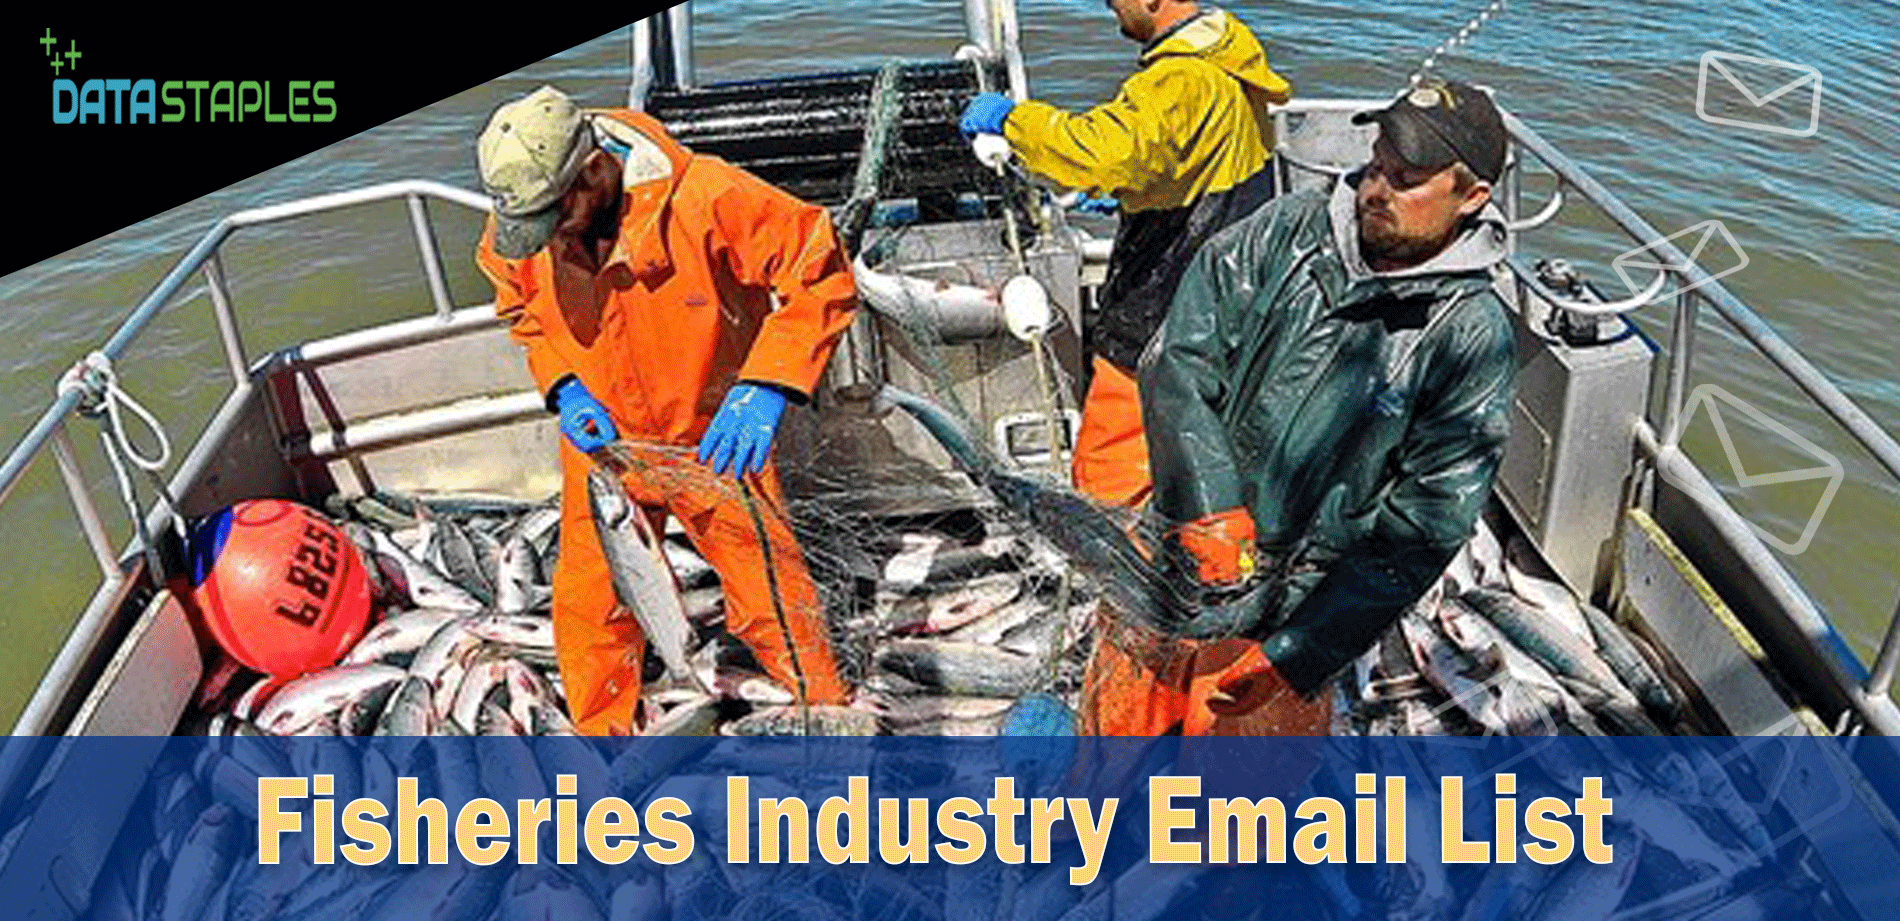 Fisheries Industry Email List | DataStaples